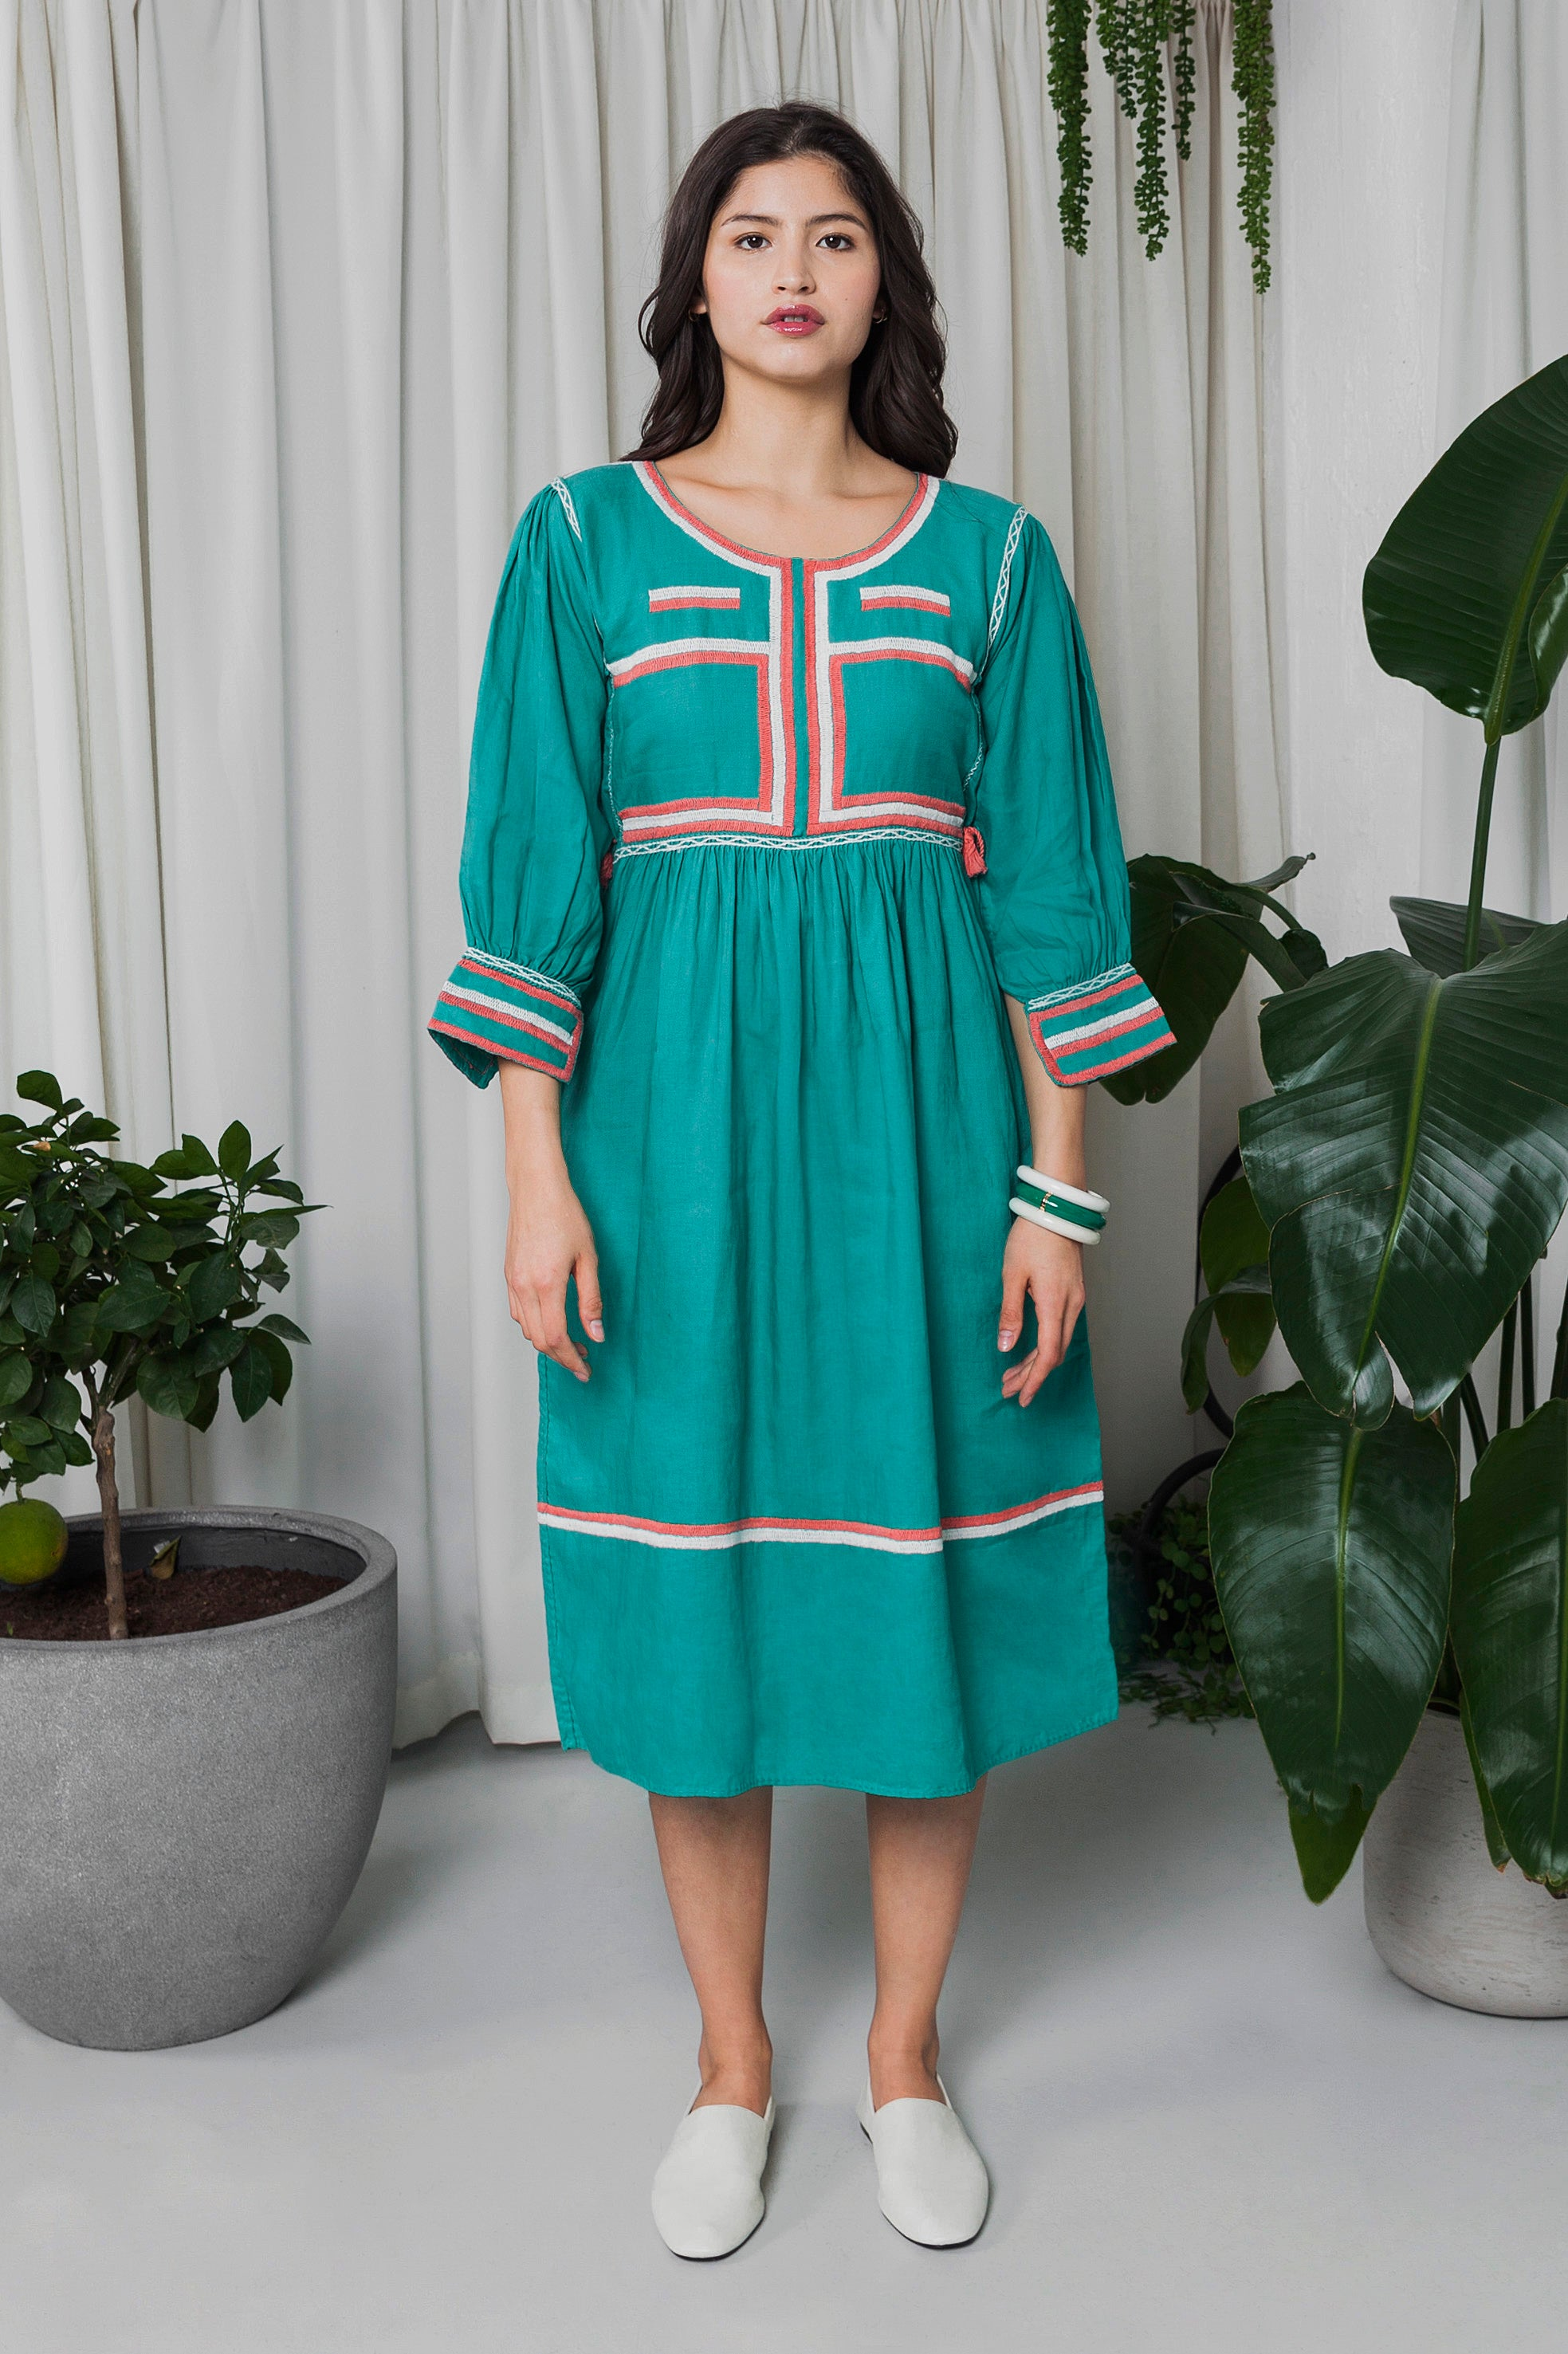 THE SERI DRESS (PRE-ORDER)